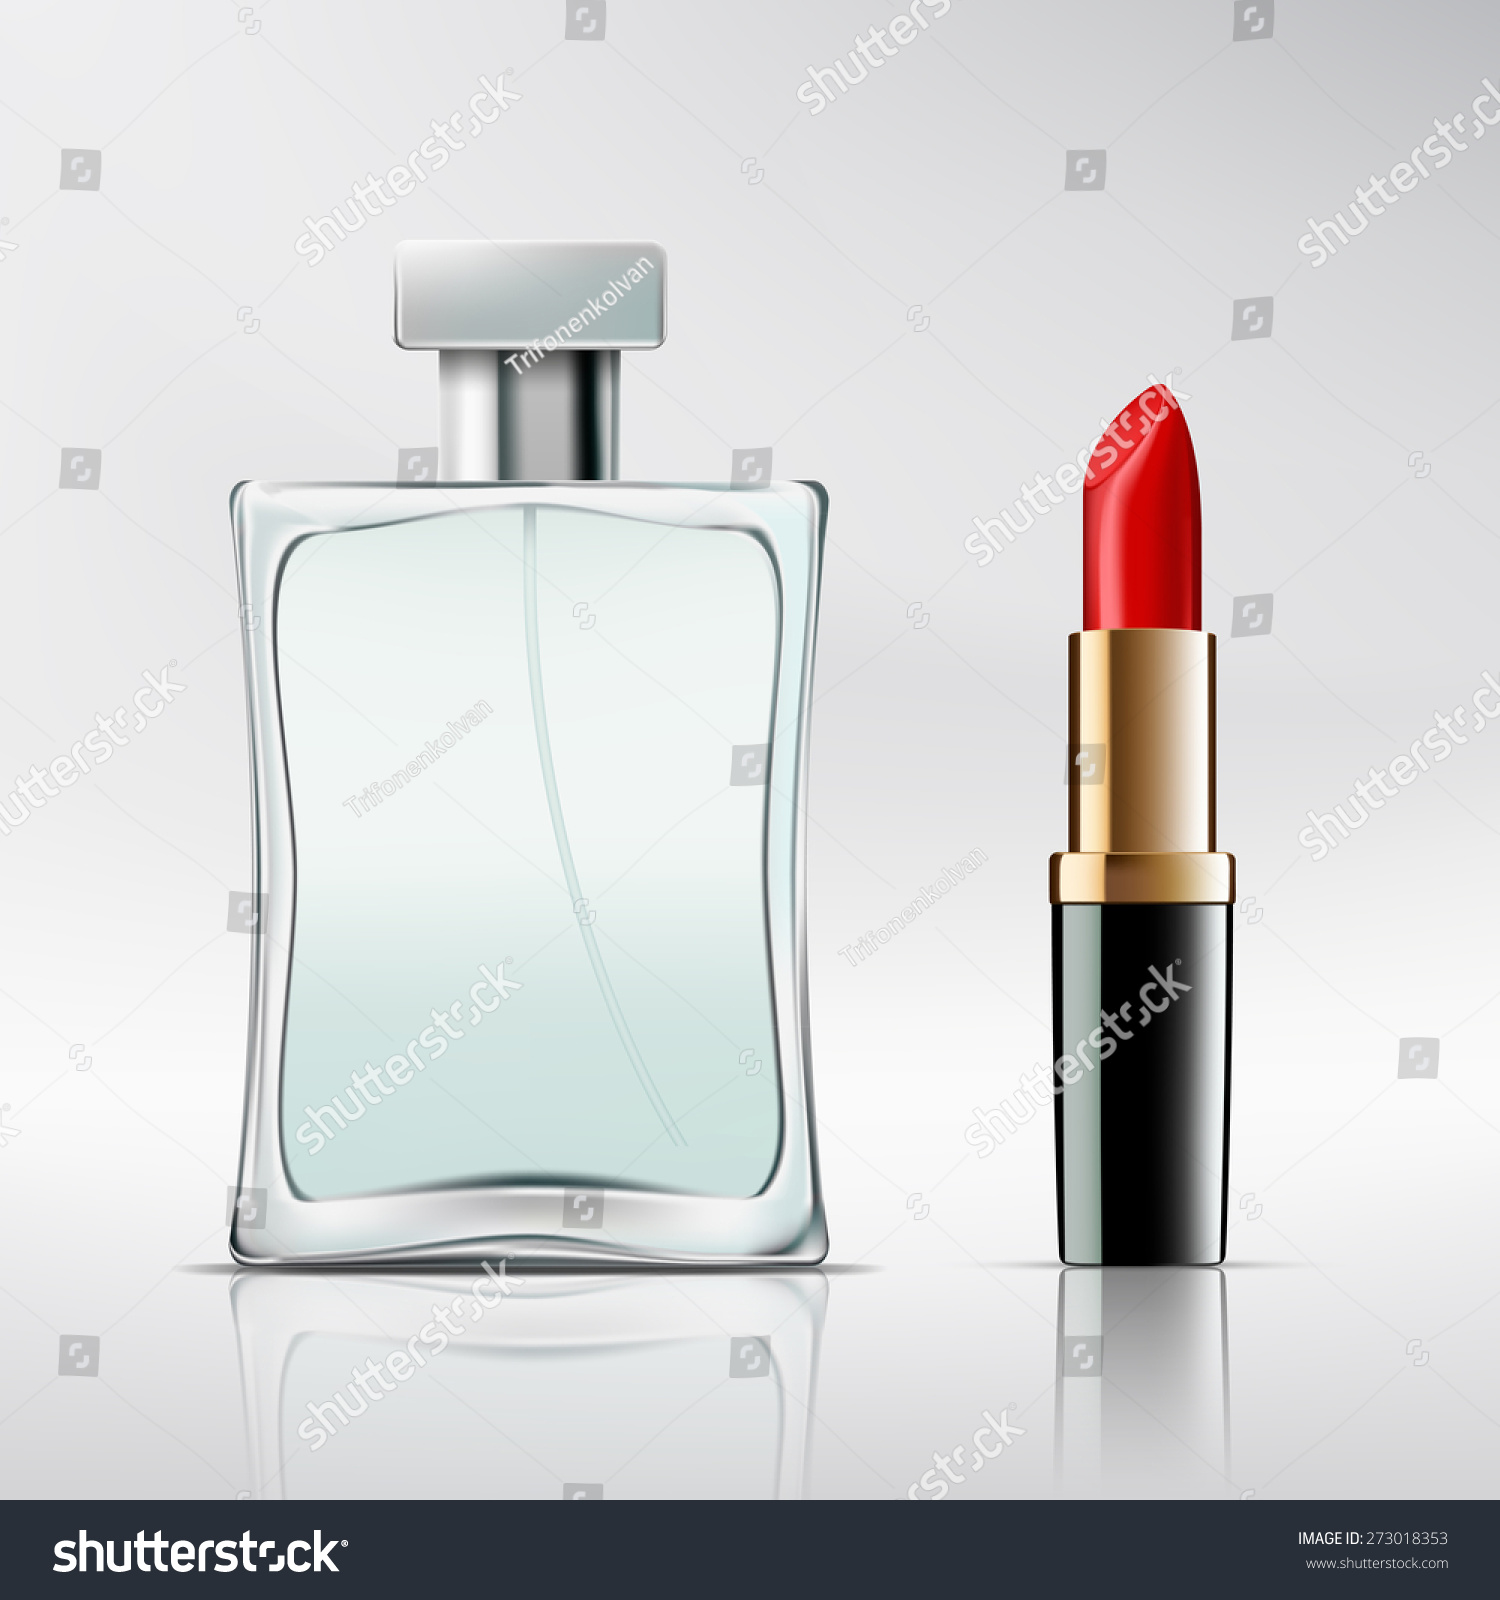 Bottle of perfume photo